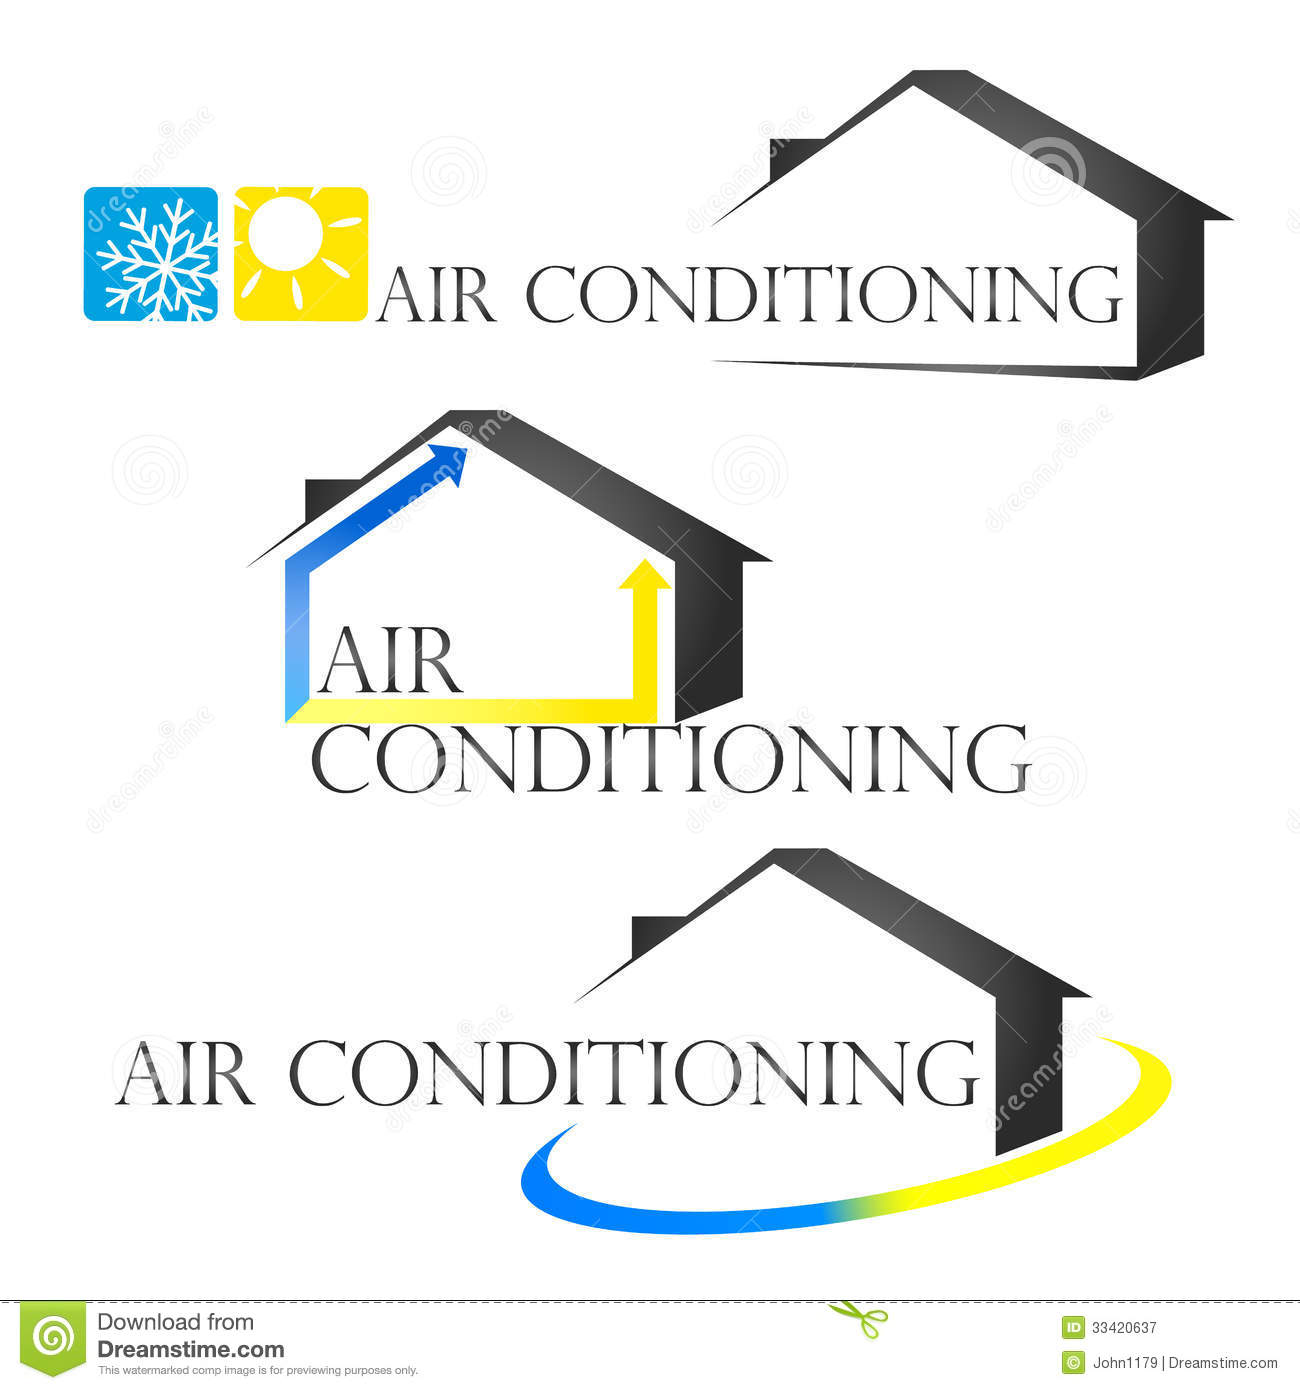 #C8BC03 Conditioning Royalty Free Stock Photography Image: 33420637 Most Effective 8095 Air Conditioner Installer Business pictures with 1300x1390 px on helpvideos.info - Air Conditioners, Air Coolers and more